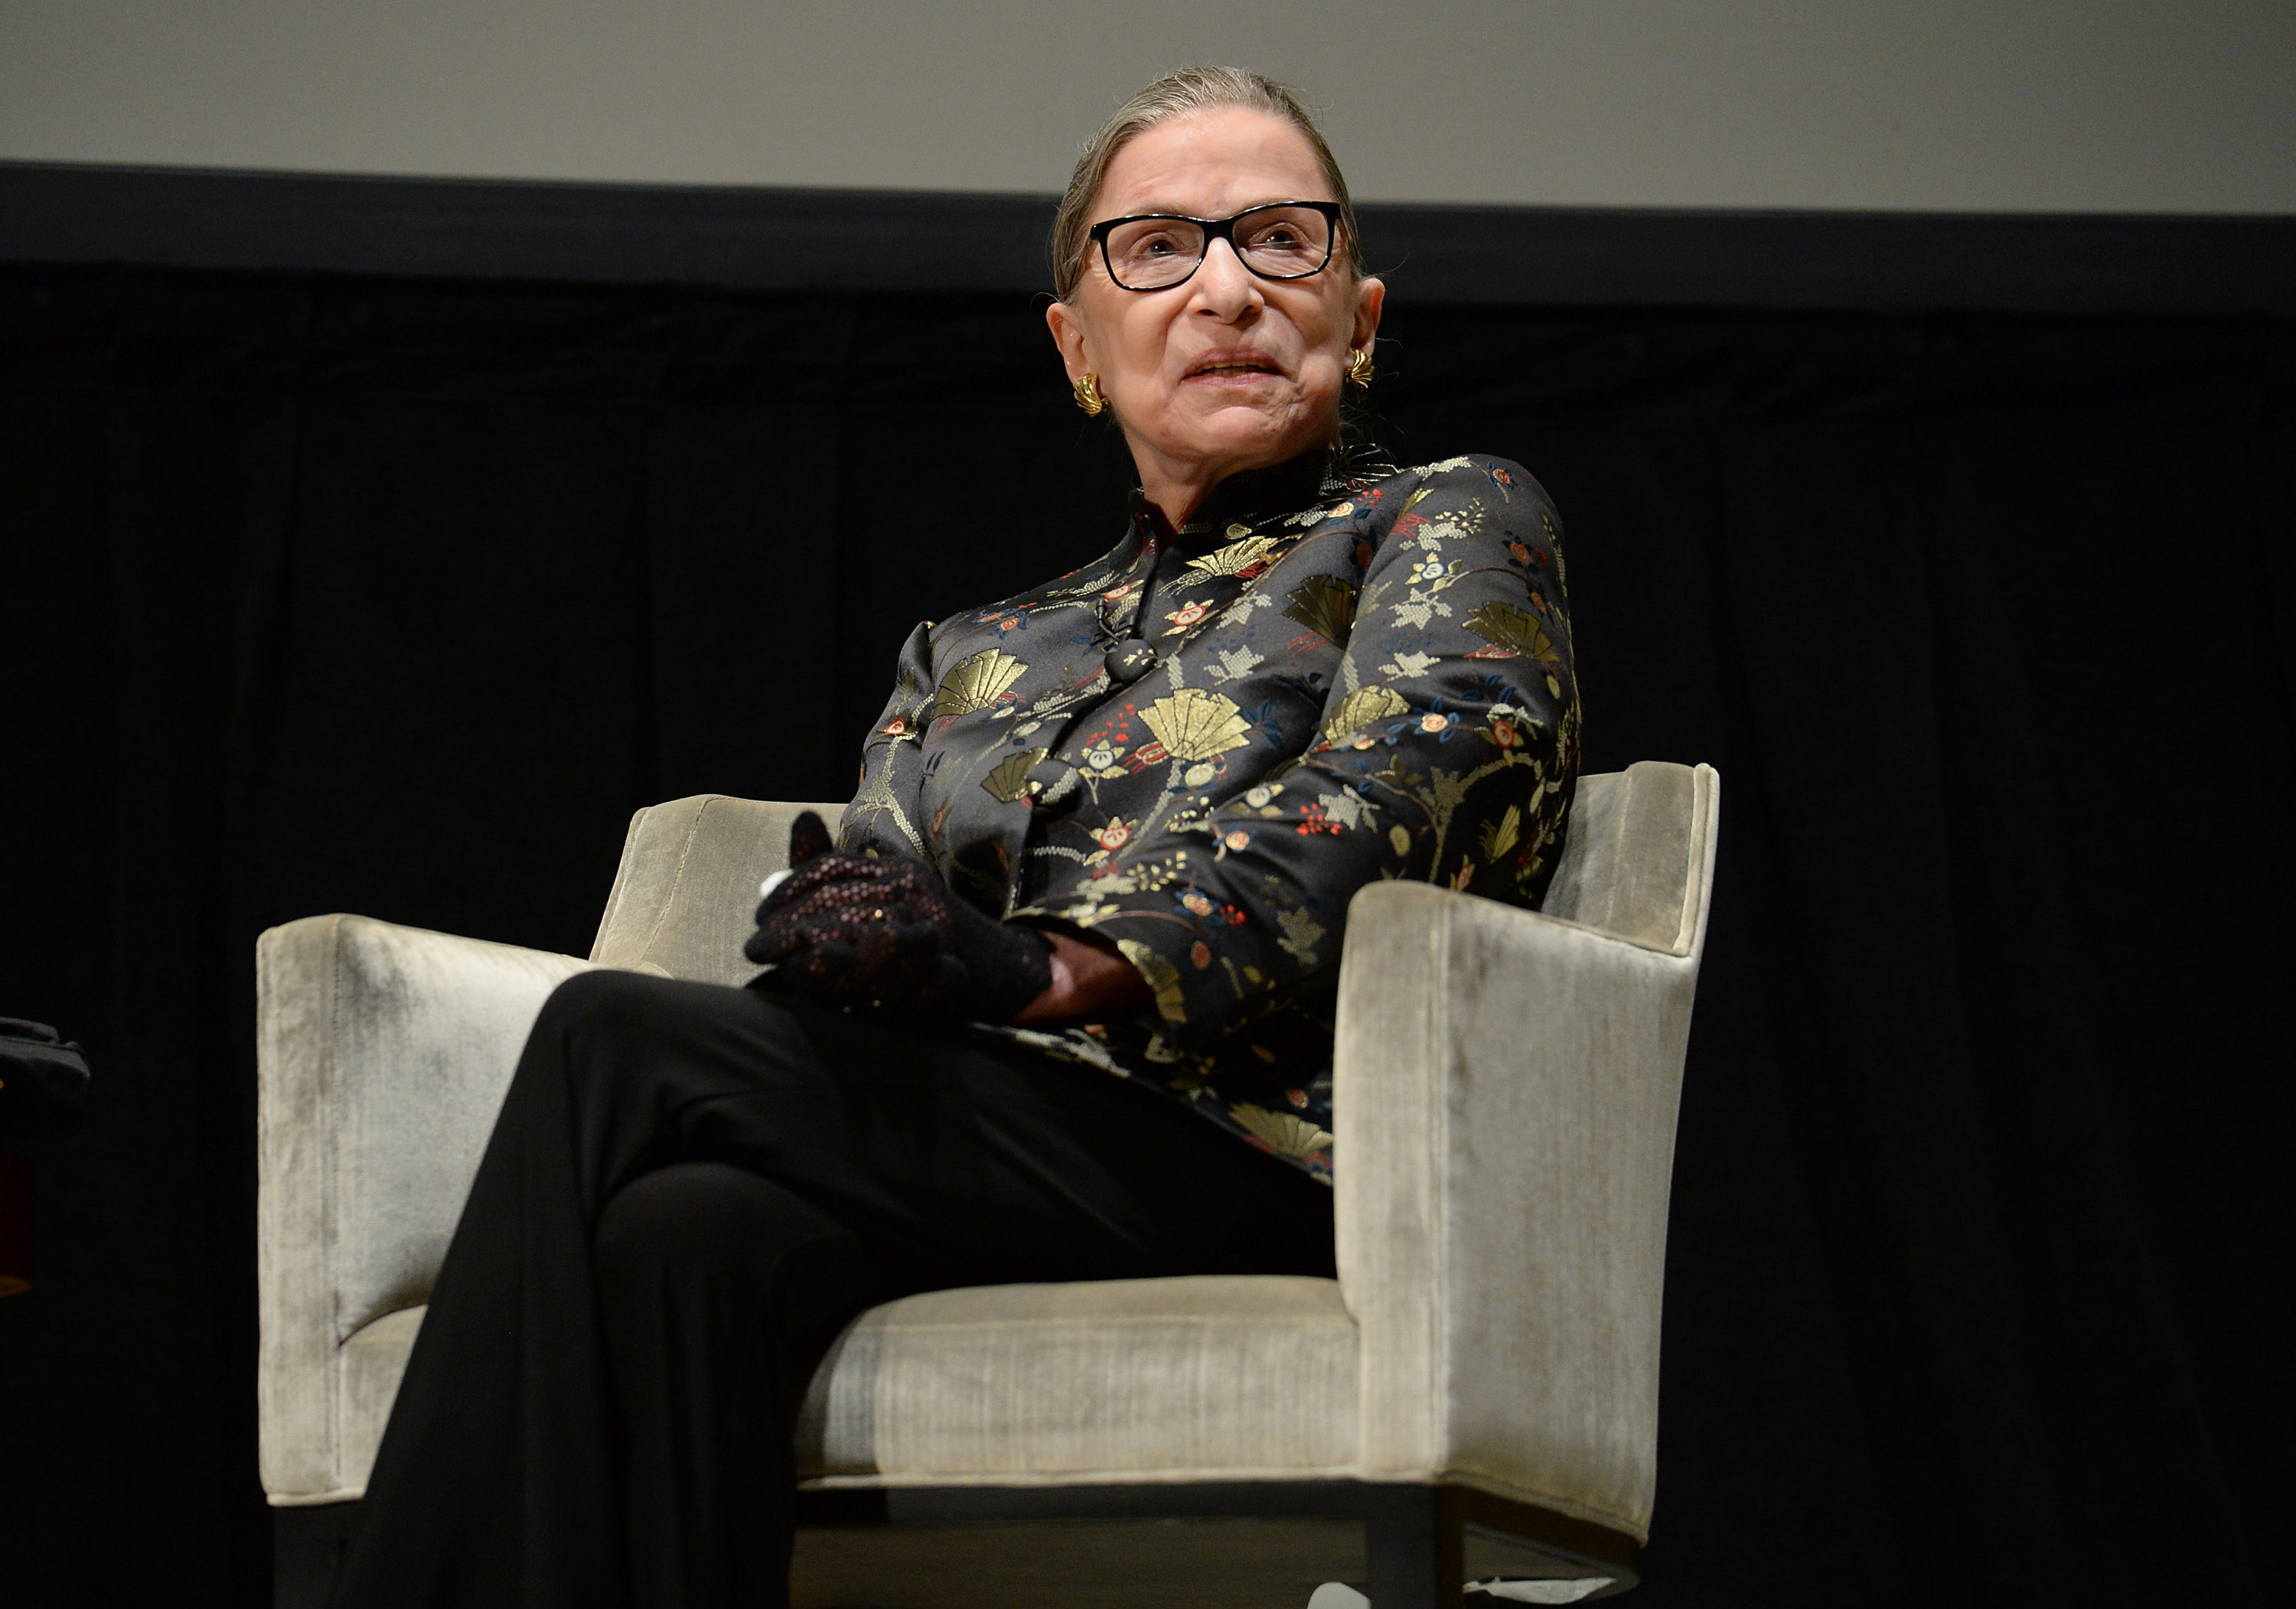 Supreme Court Justice Ruth Bader Ginsburg presents onstage at An Historic Evening with Supreme Court Justice Ruth Bader Ginsburg at the Temple Emanu-El Skirball Center on Sept. 21, 2016 in New York City.